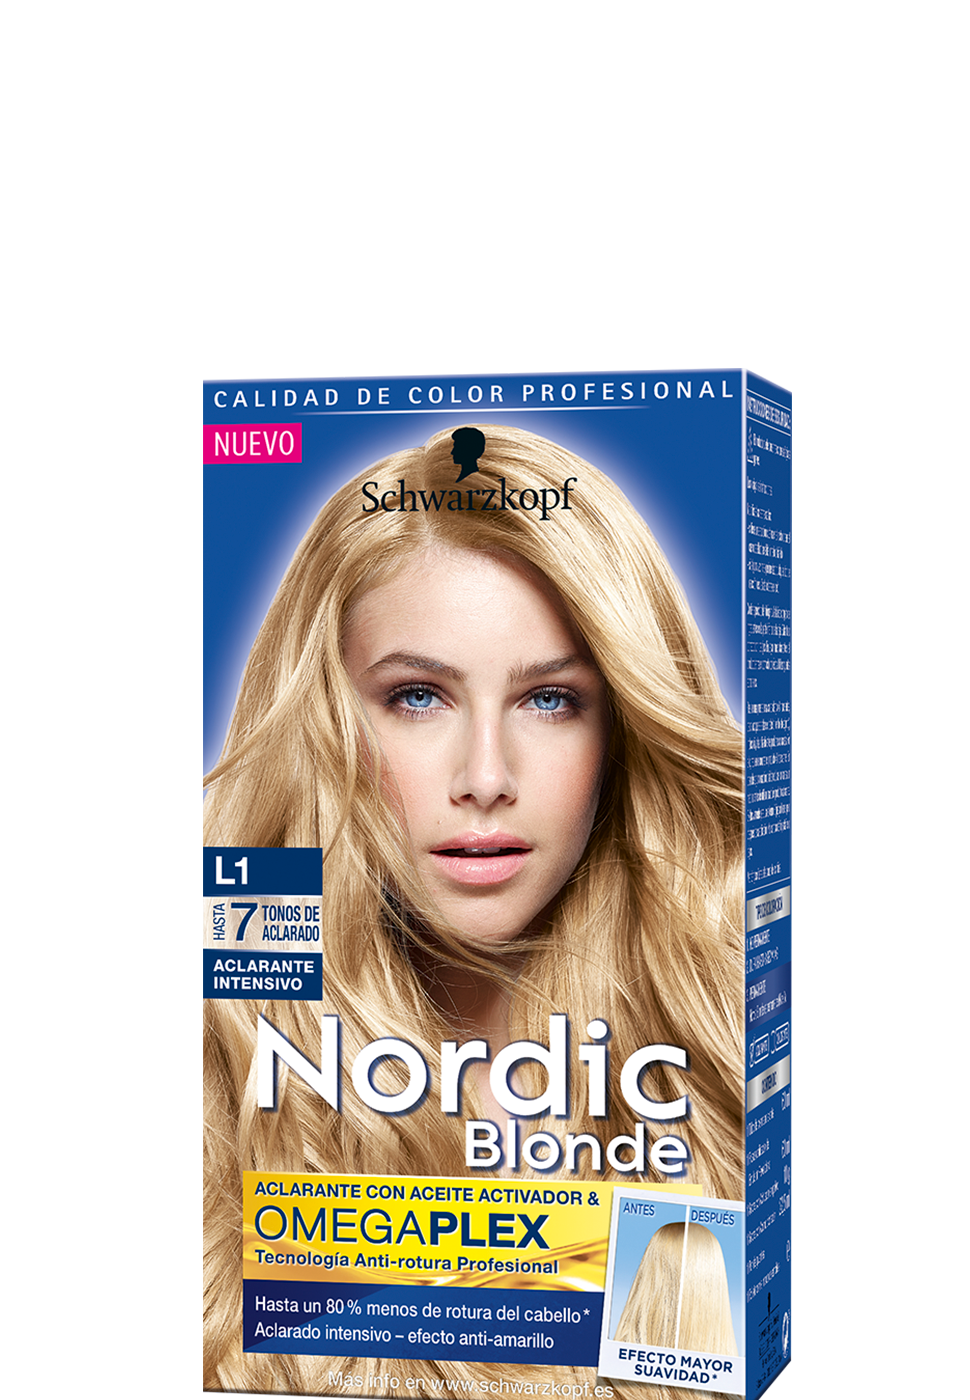 nordicblonde_pack_970x1400